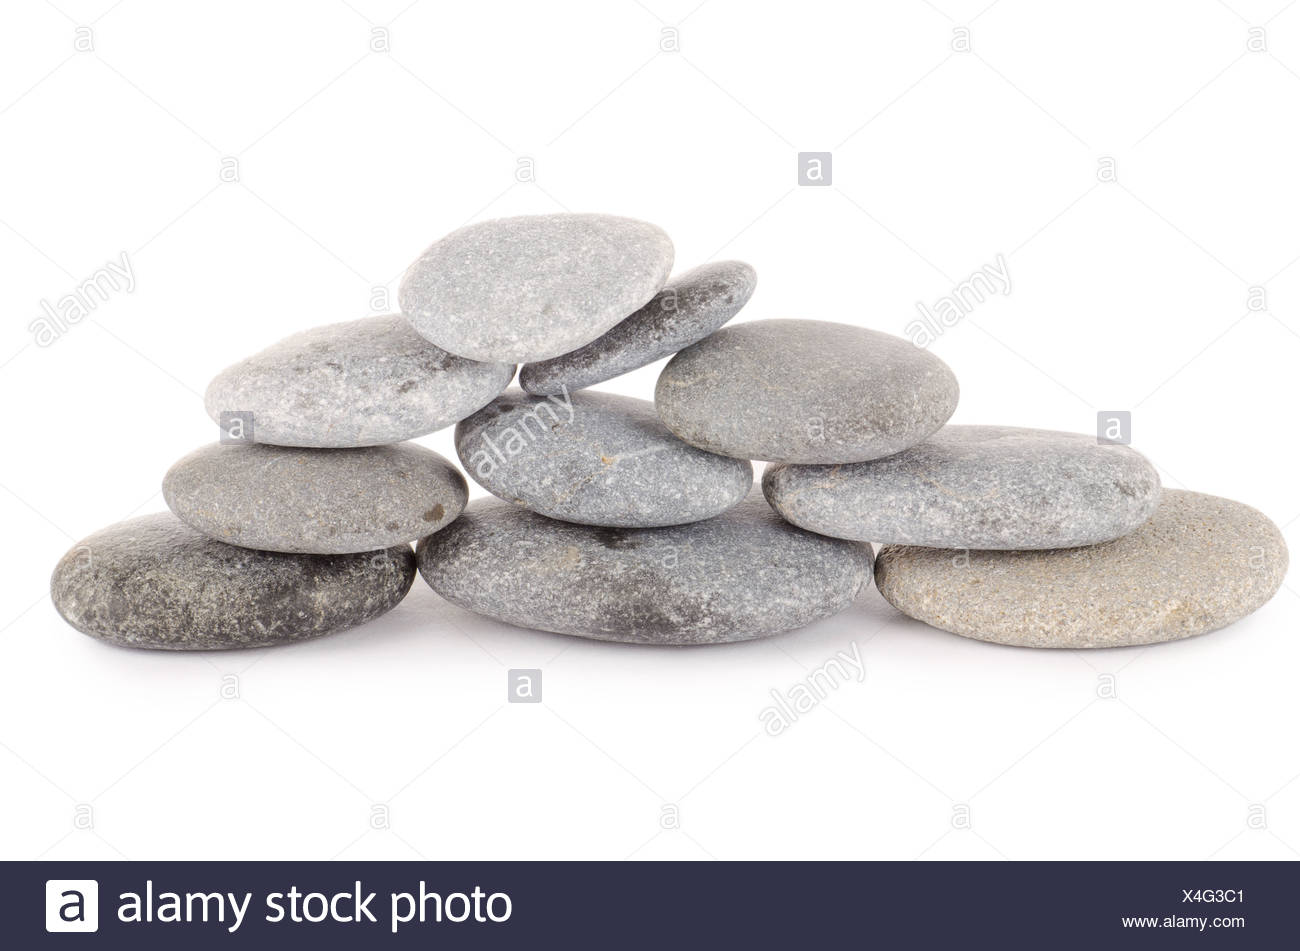 Group of stones - Stock Image